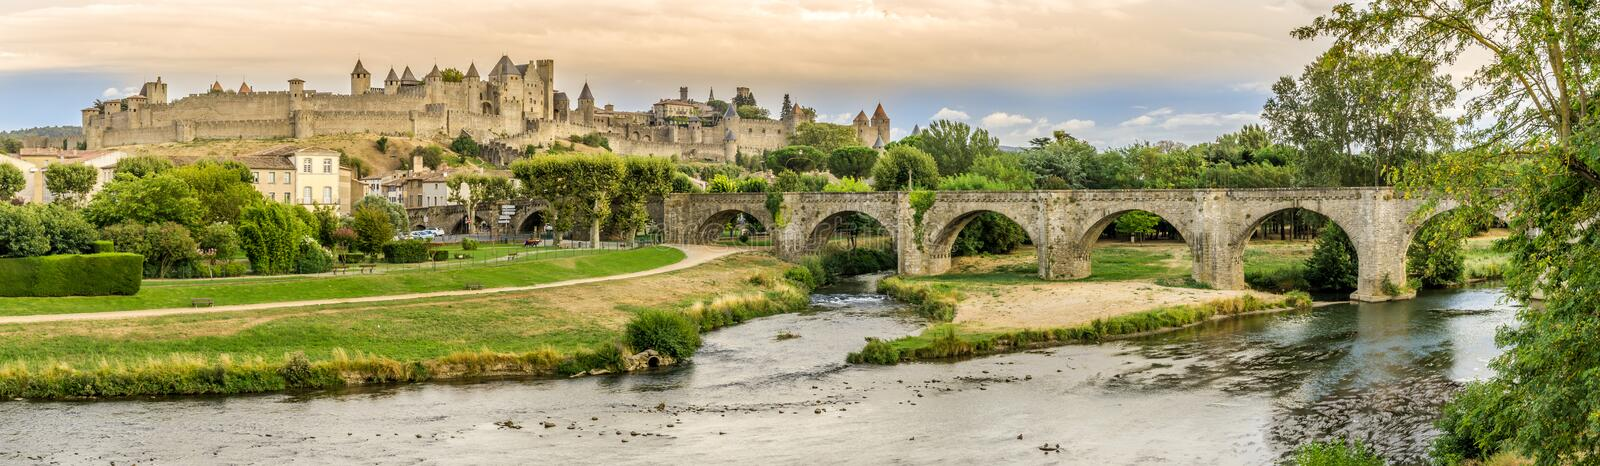 Panoramic view at the Old City of Carcassonne with Old Bridge over L Aude river - France stock images